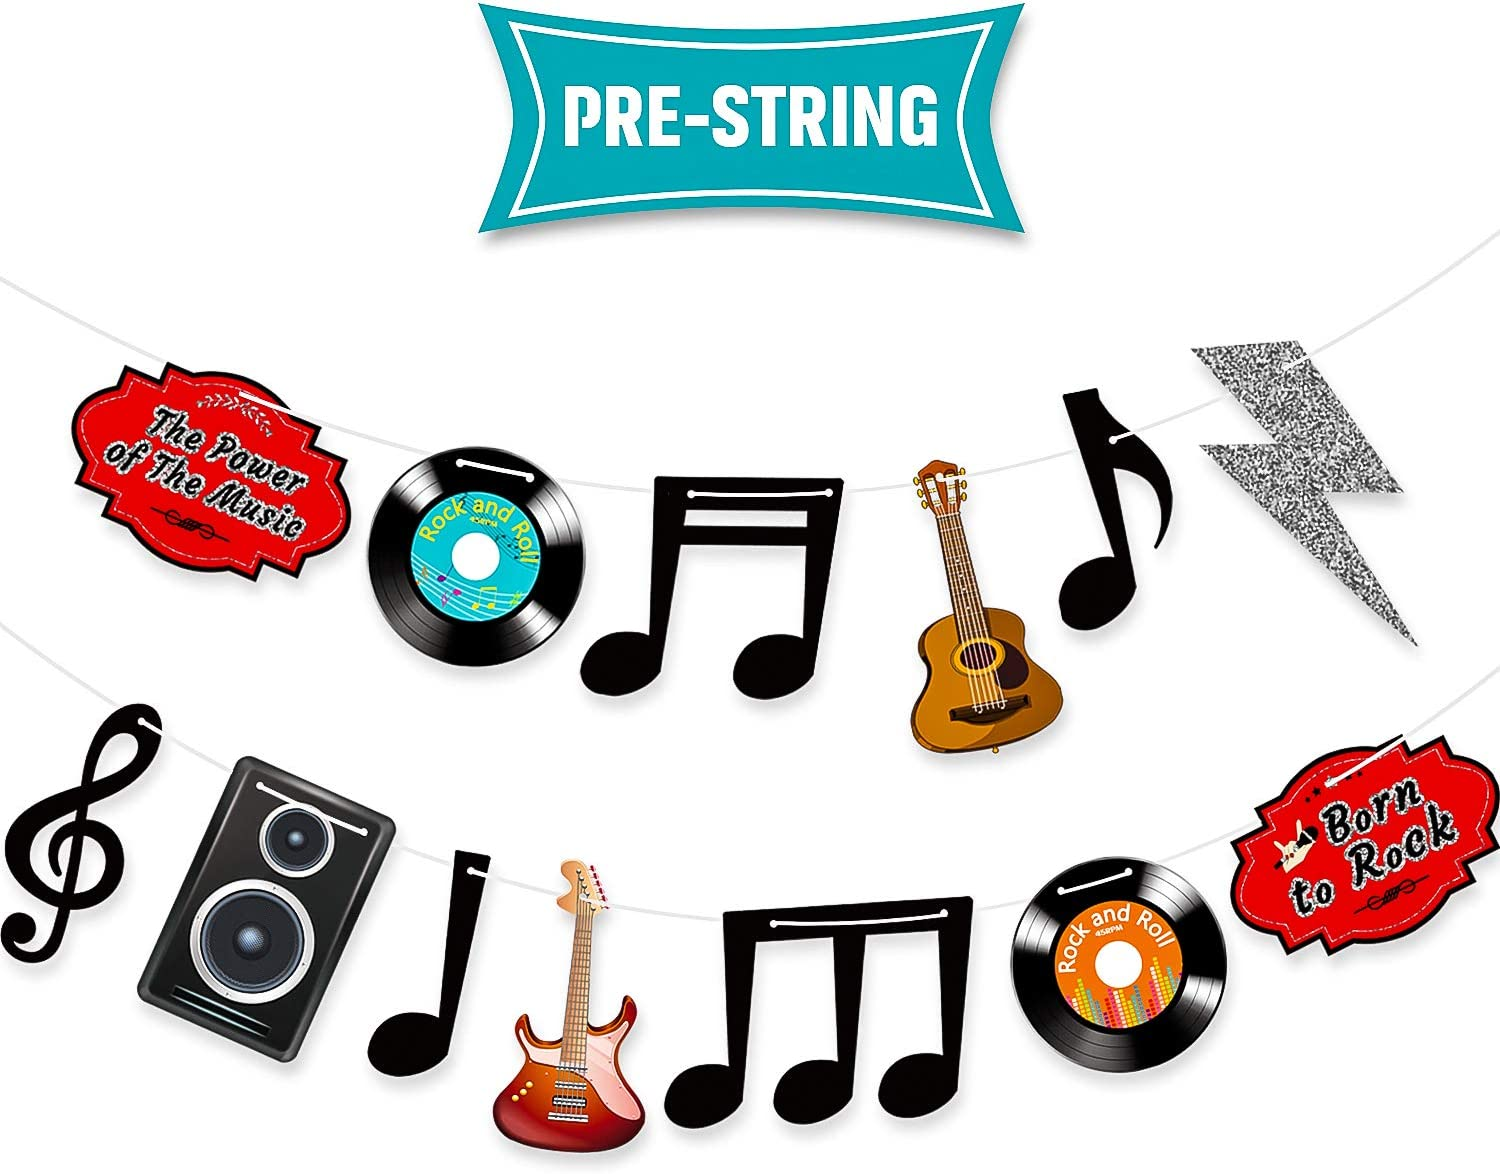 Music Note Decorations Banner 1950's Rock and Roll Party Decorations Musical Notes Silhouettes Rock and Roll Star 50s Theme Party Karaoke Music Wall Decor Cardboard Cutouts Electric Record Cutout